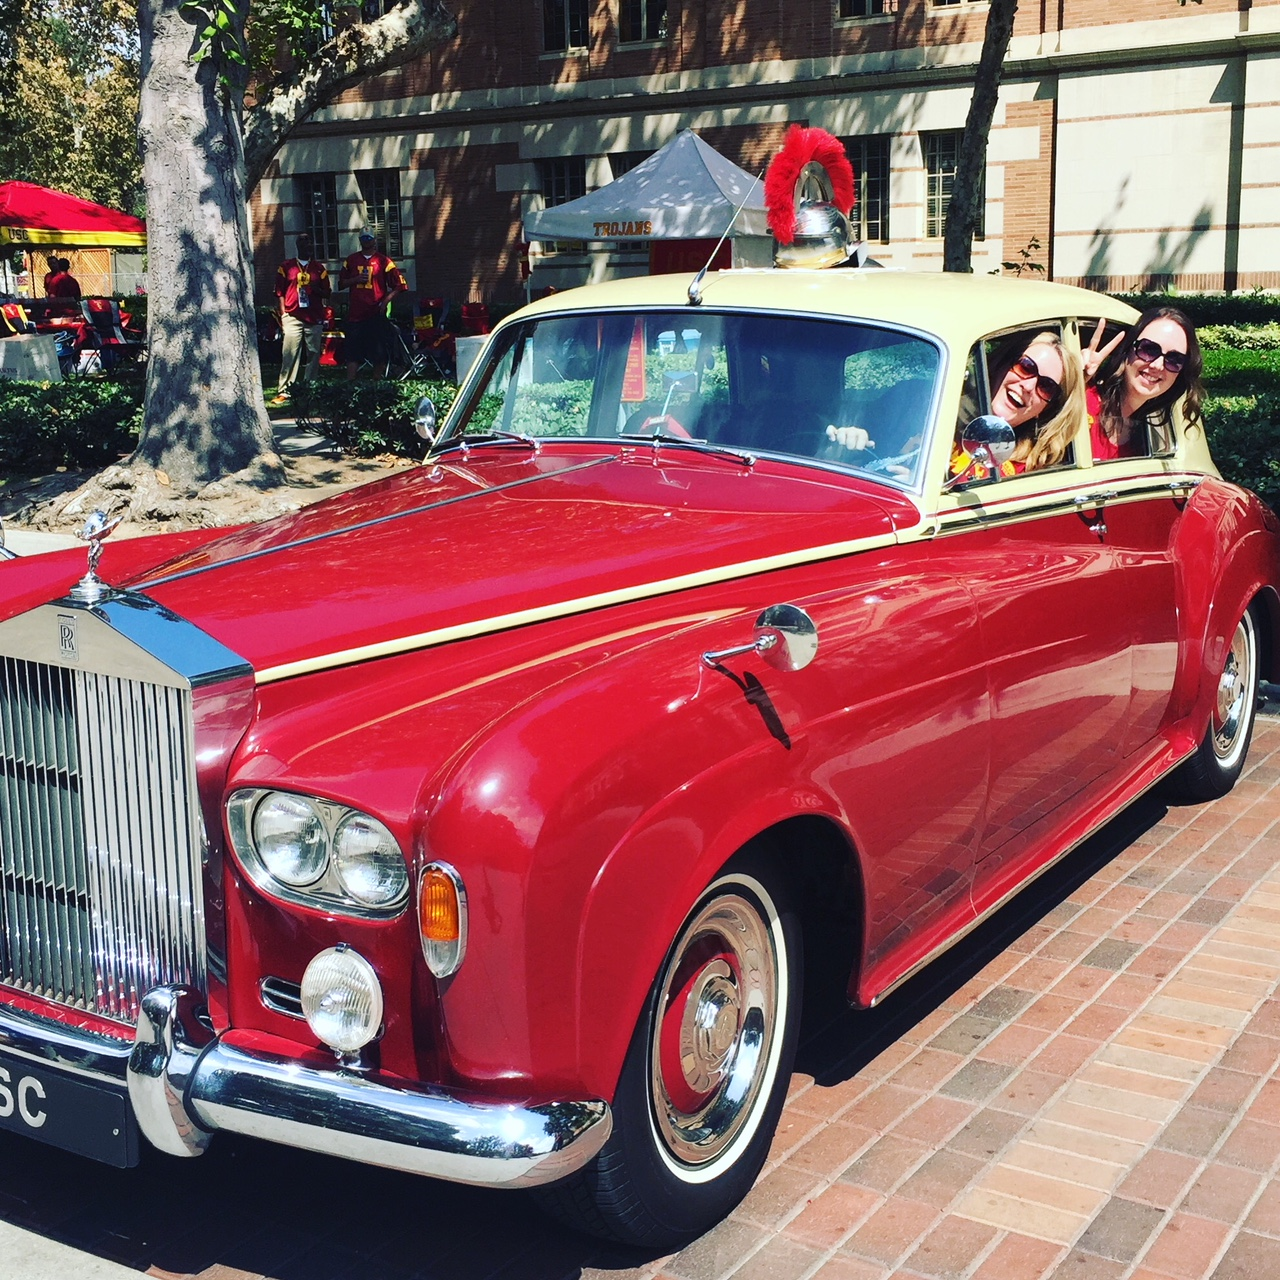 You probably can't find a vintage Rolls Royce like that at a car rental place, but you can always dream.